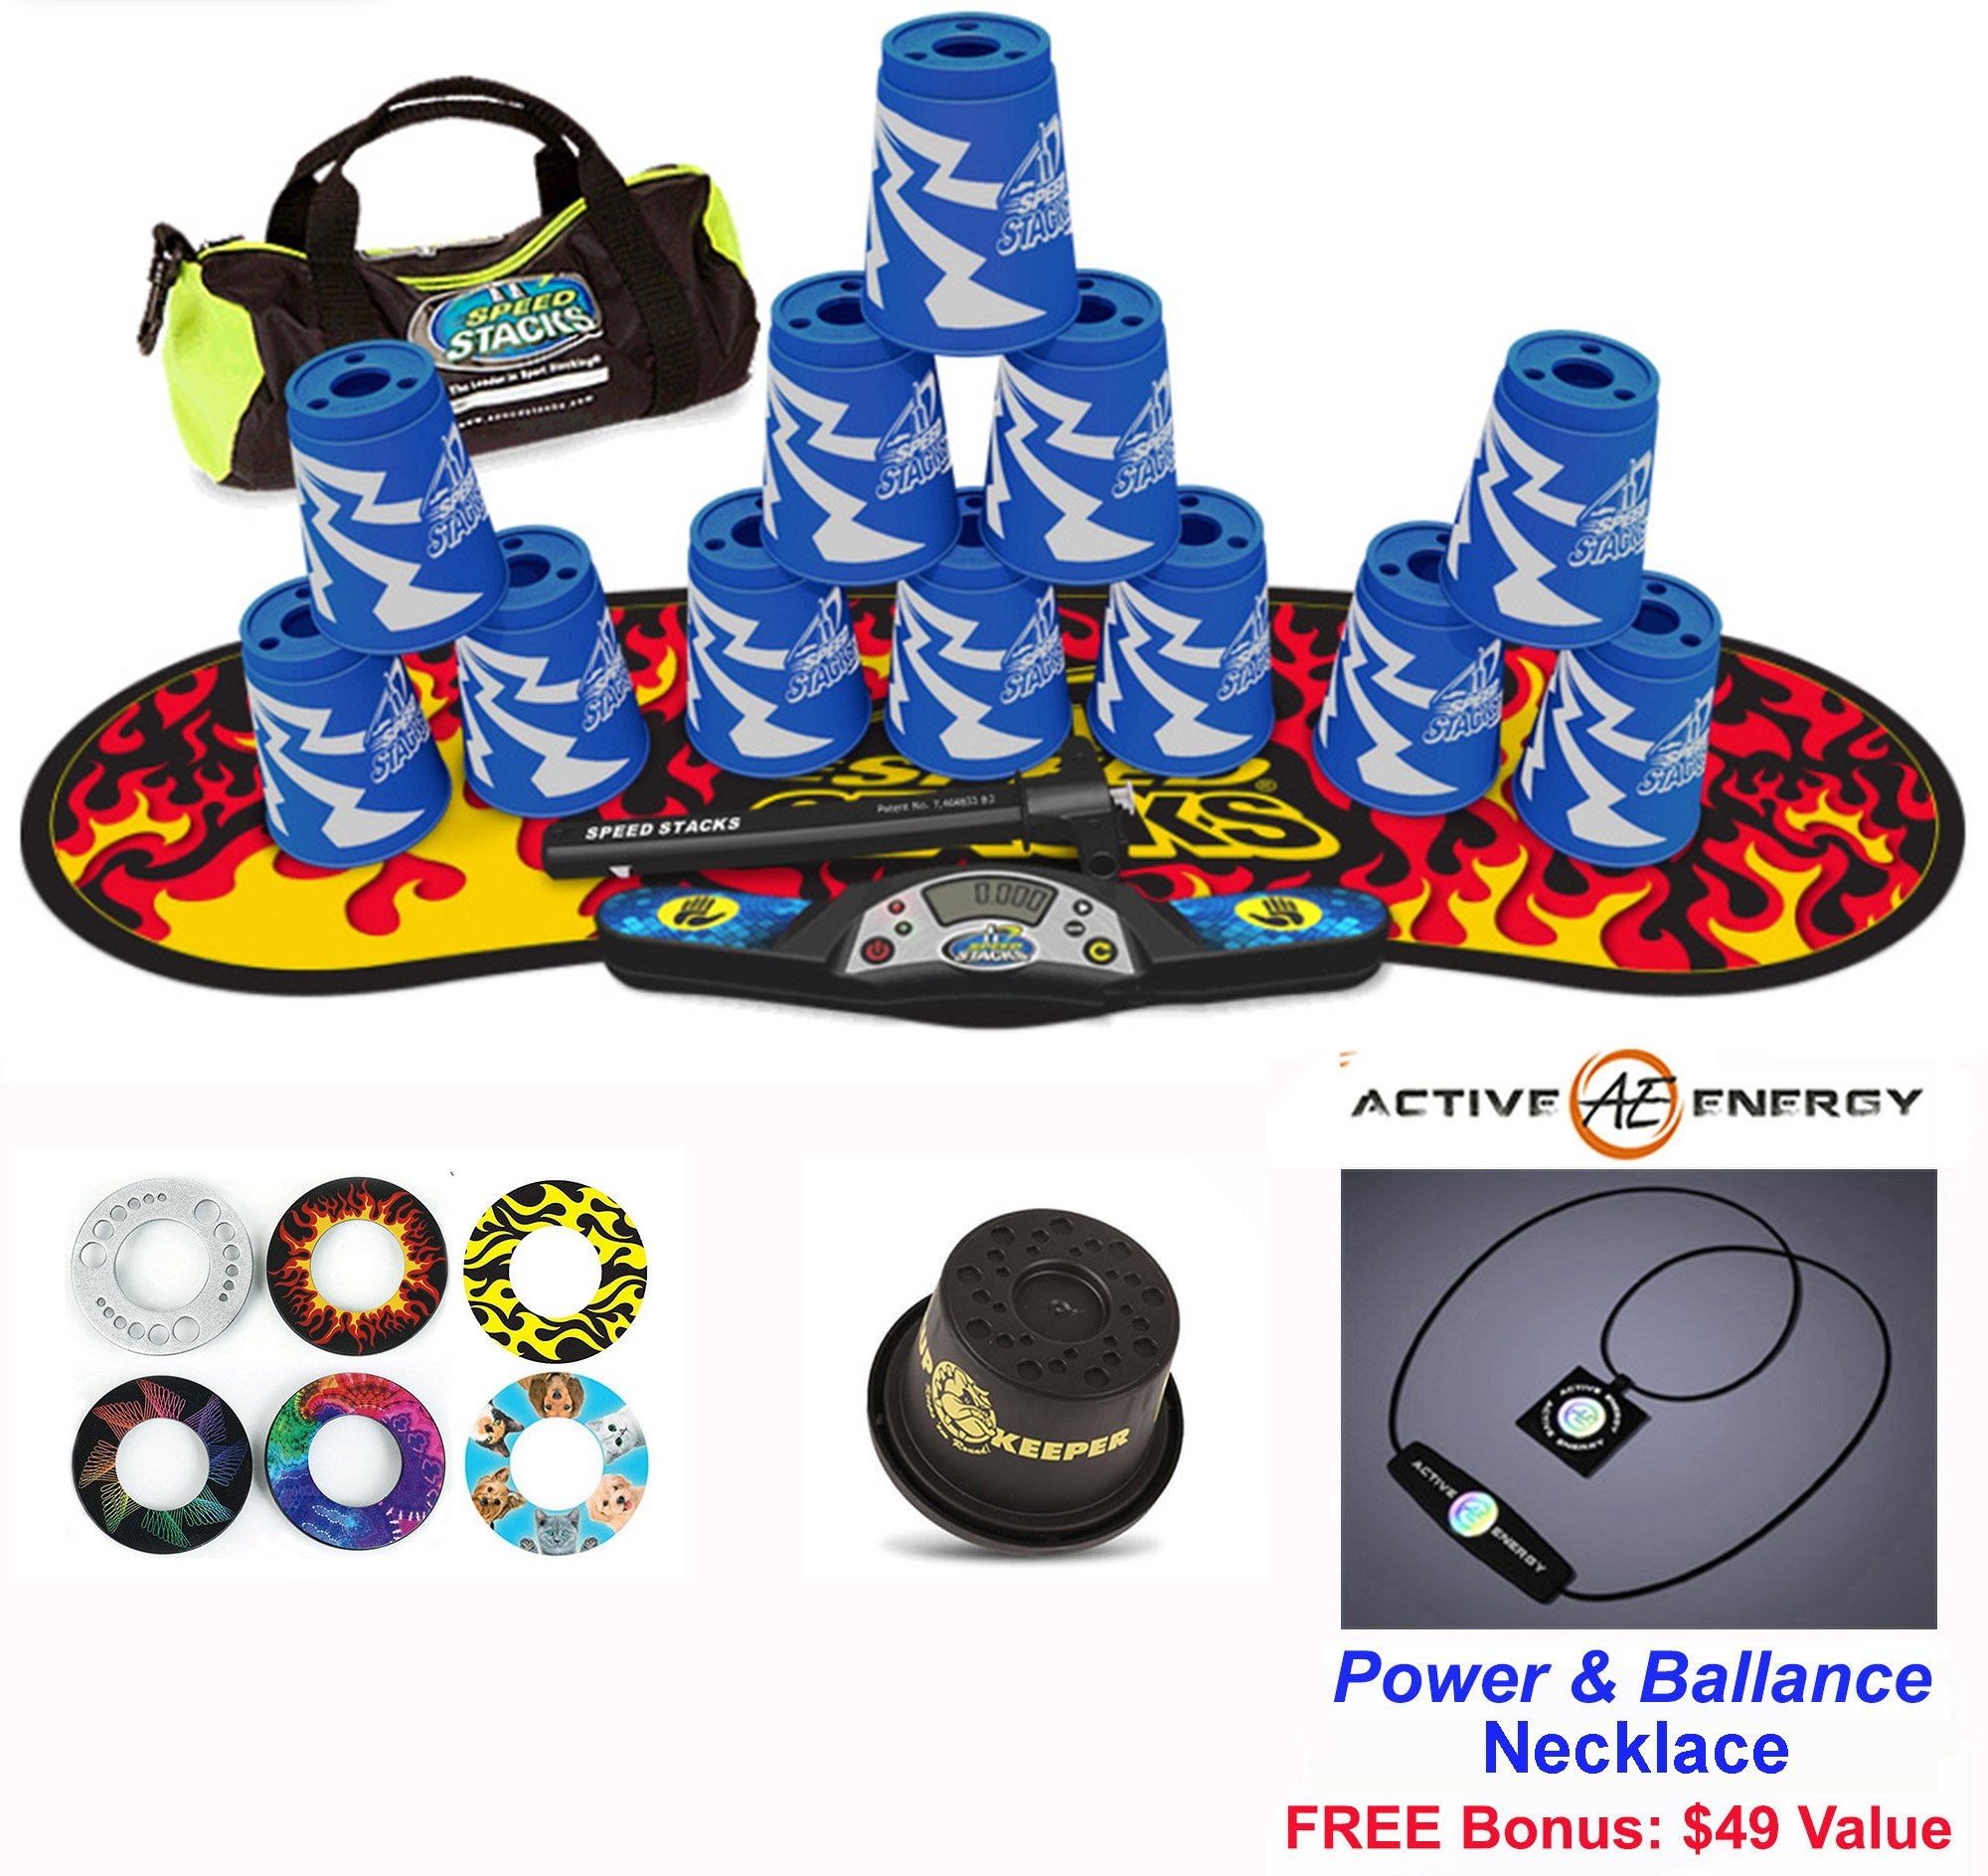 Speed Stacks Combo Set 'The Works'': 12 ATOMIC PUNCH 4'' Cups, Black Flame Gen 3 Mat, G4 Pro Timer, Cup Keeper, Stem, Gear Bag + Active Energy Necklace